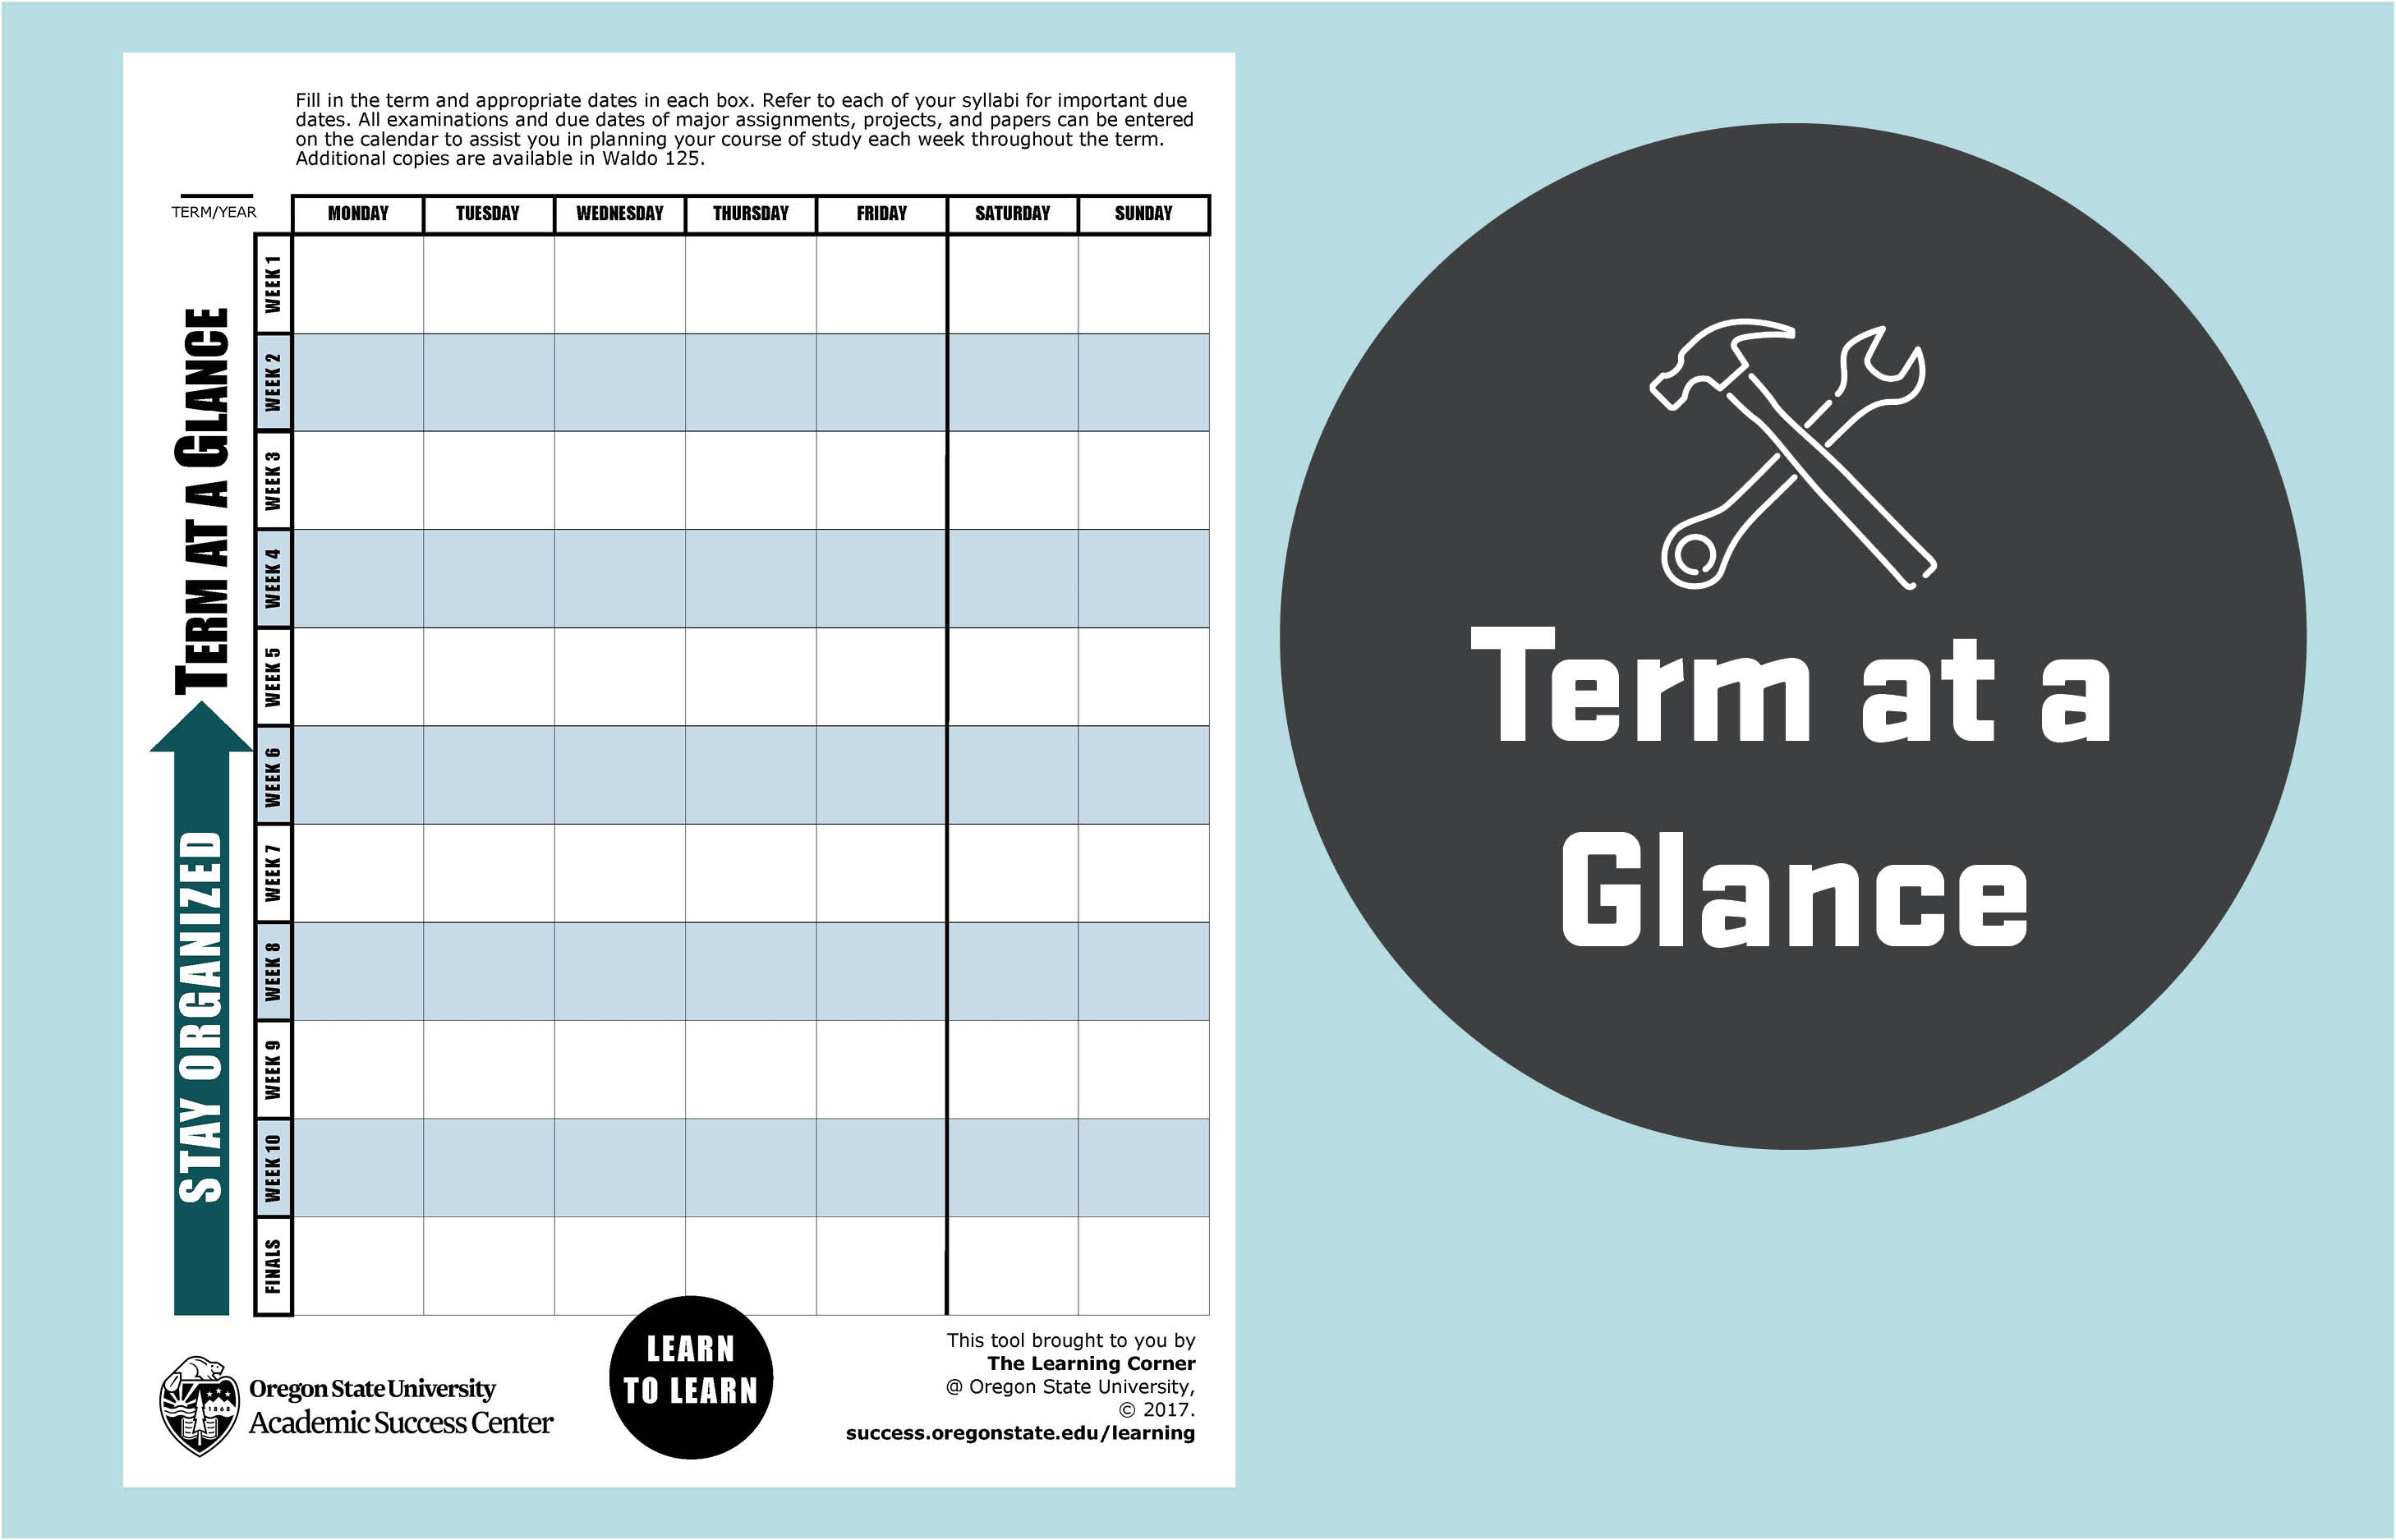 Term at a glance tool